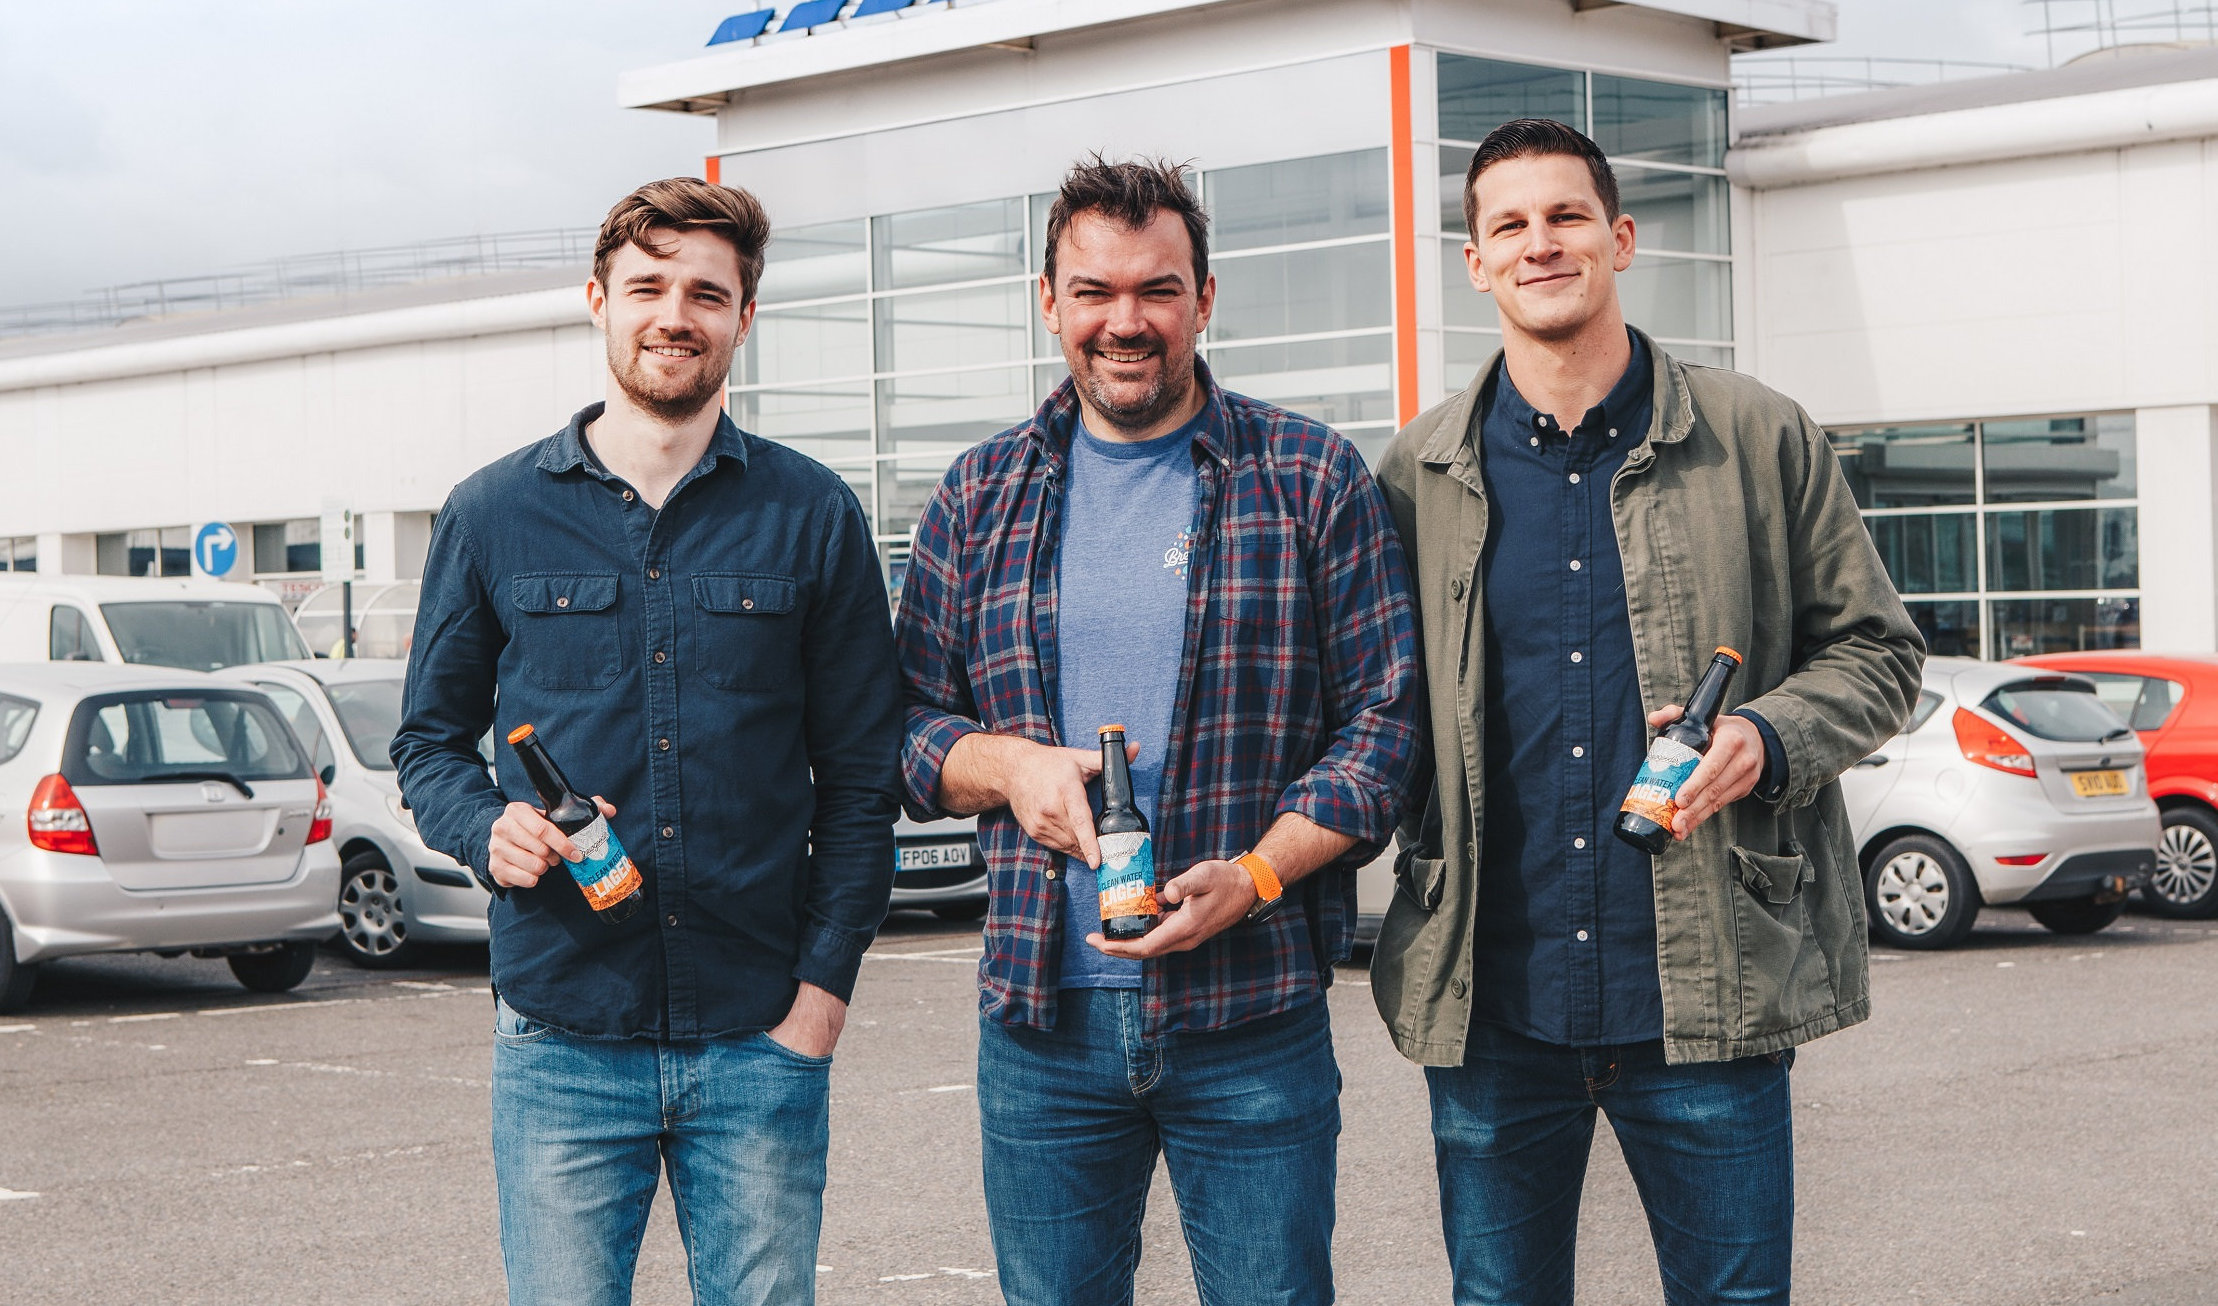 From left: James Hughes, Scott MacDonald and Henry Leonard of Brewgooder